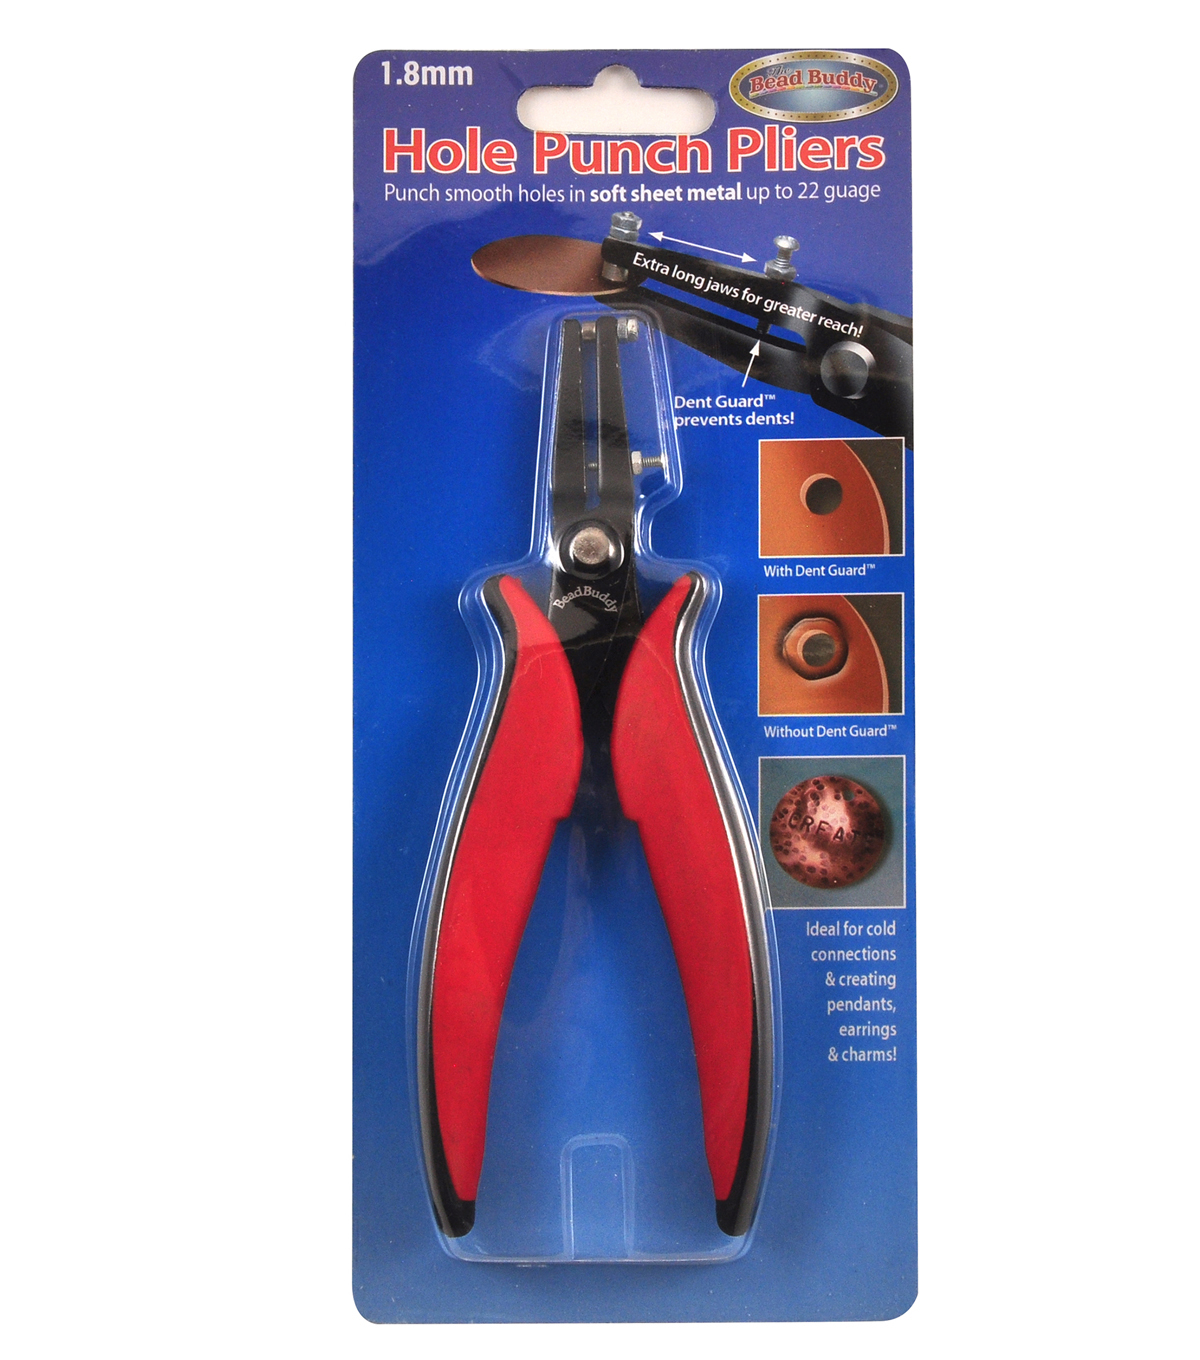 Hole Punch Tool 1.8mm